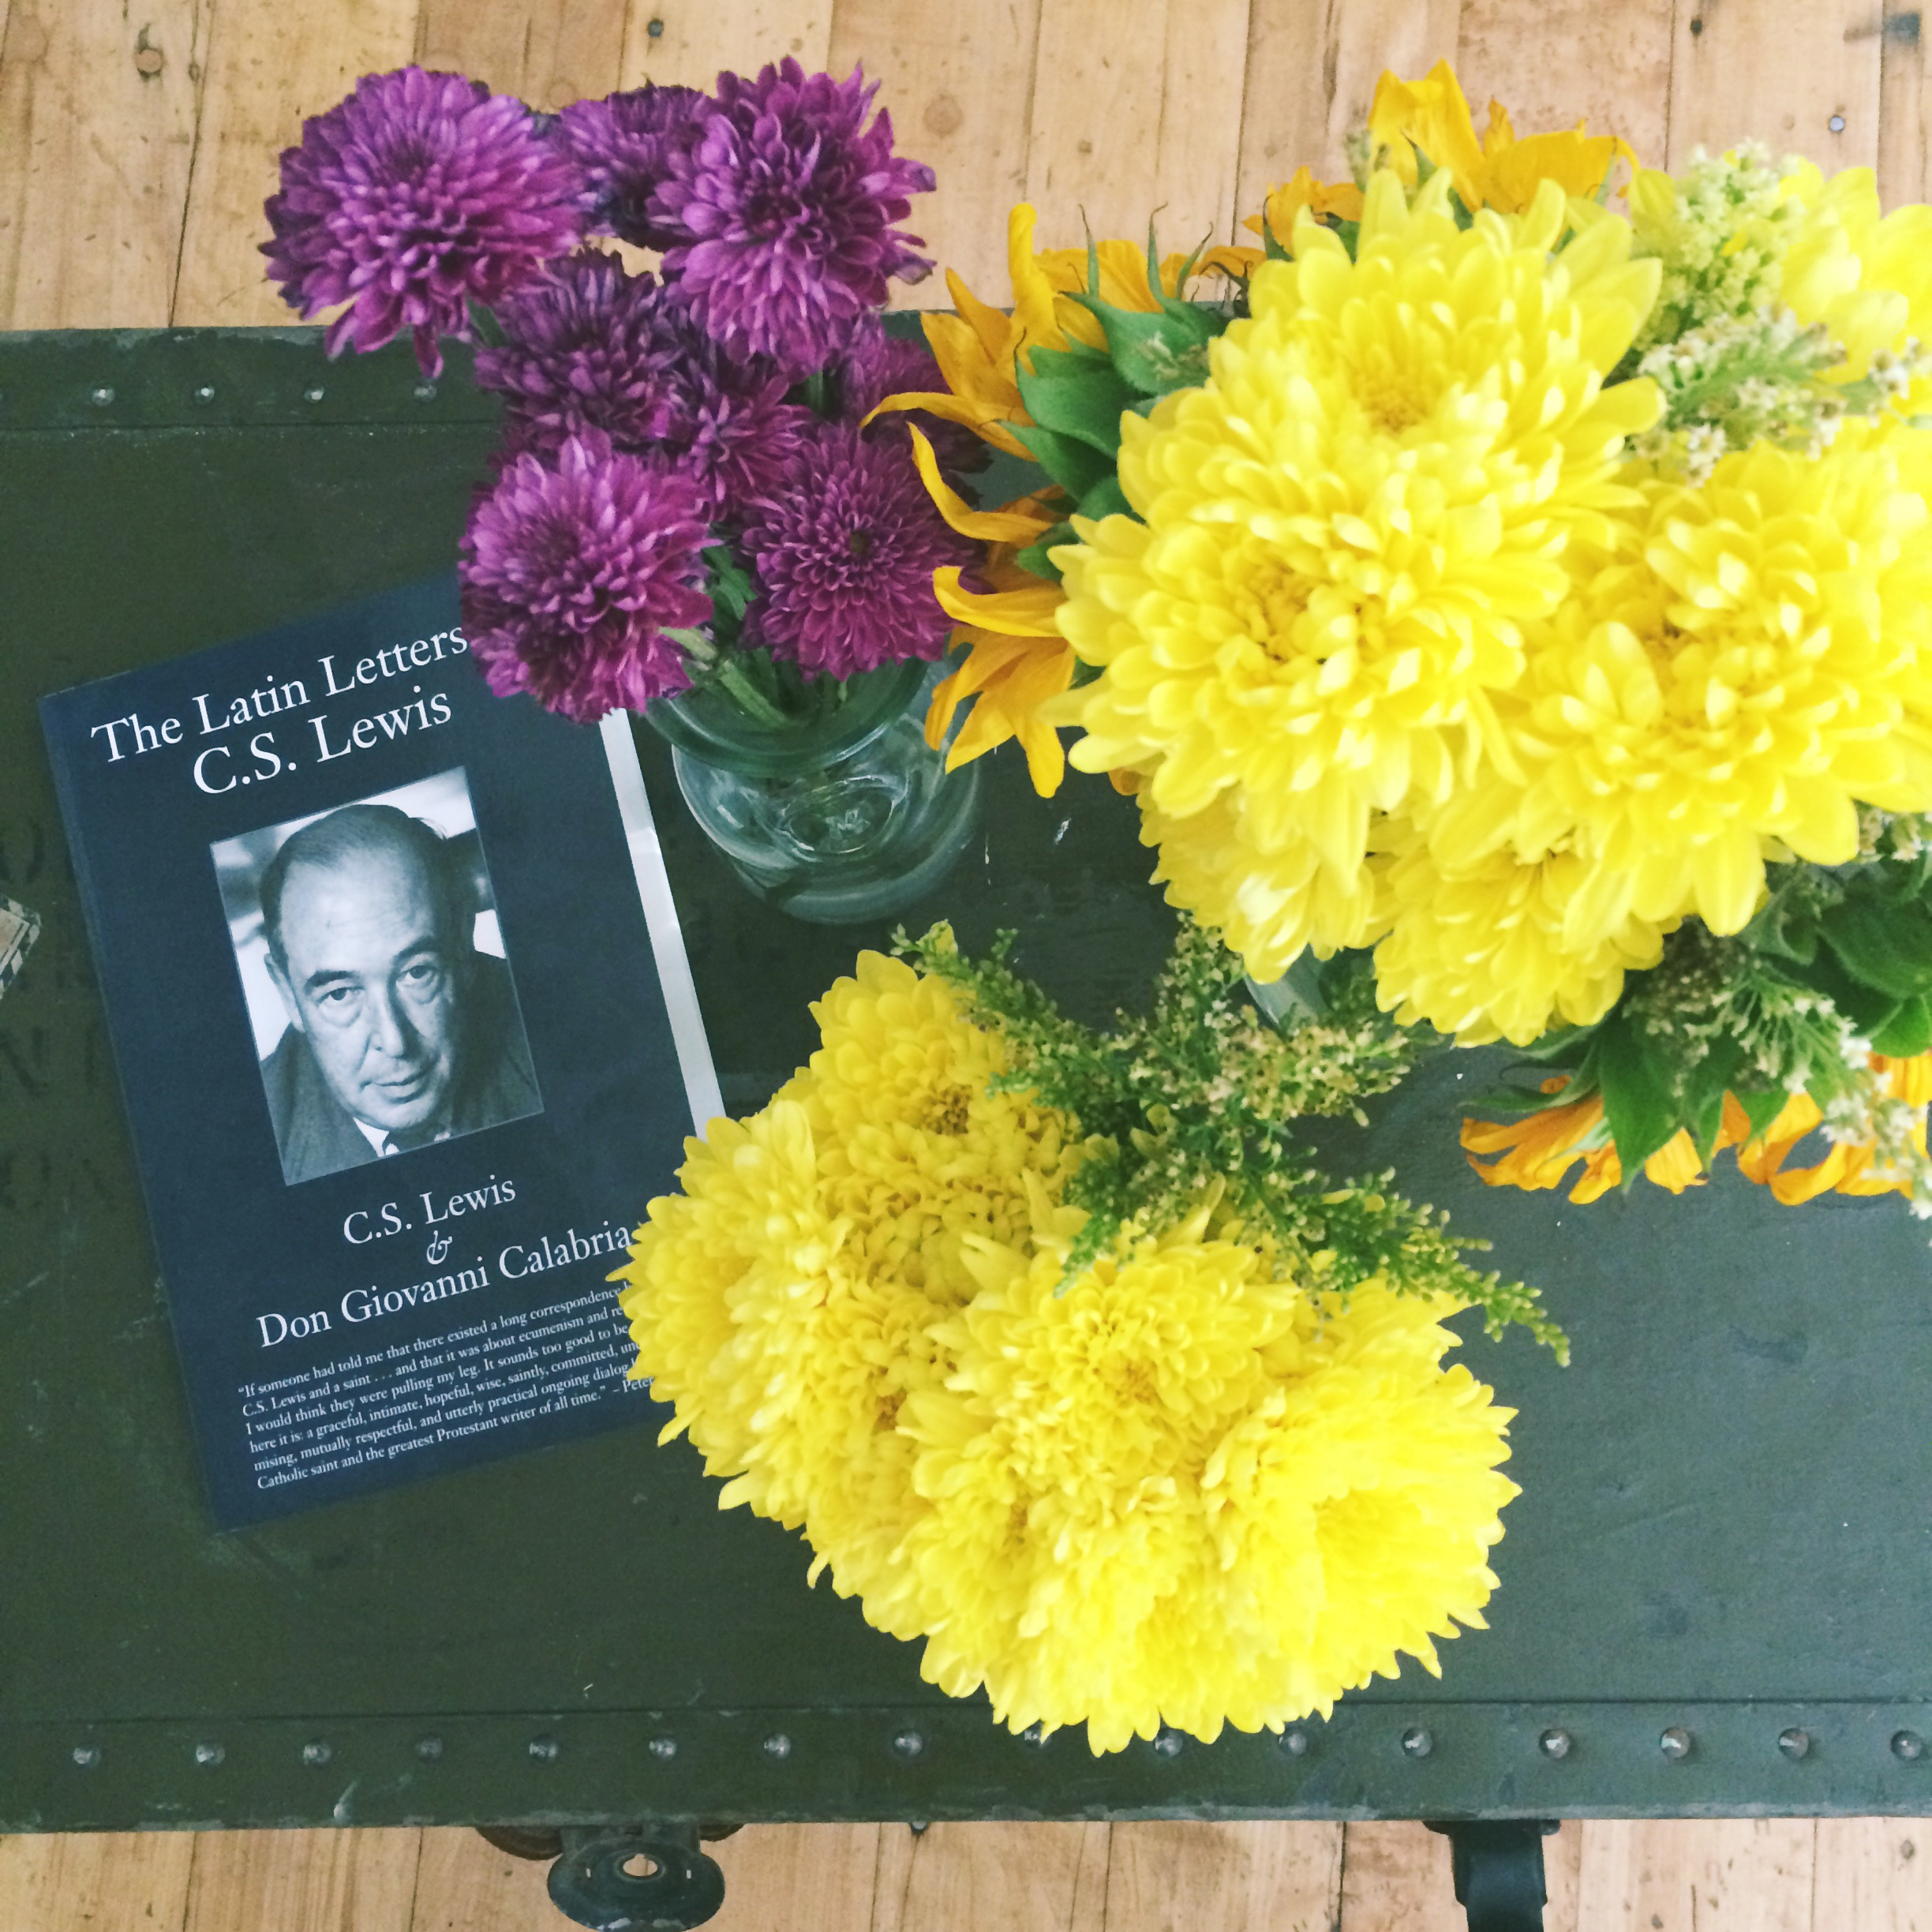 The Latin Letters of C.S. Lewis | MrsAmberApple